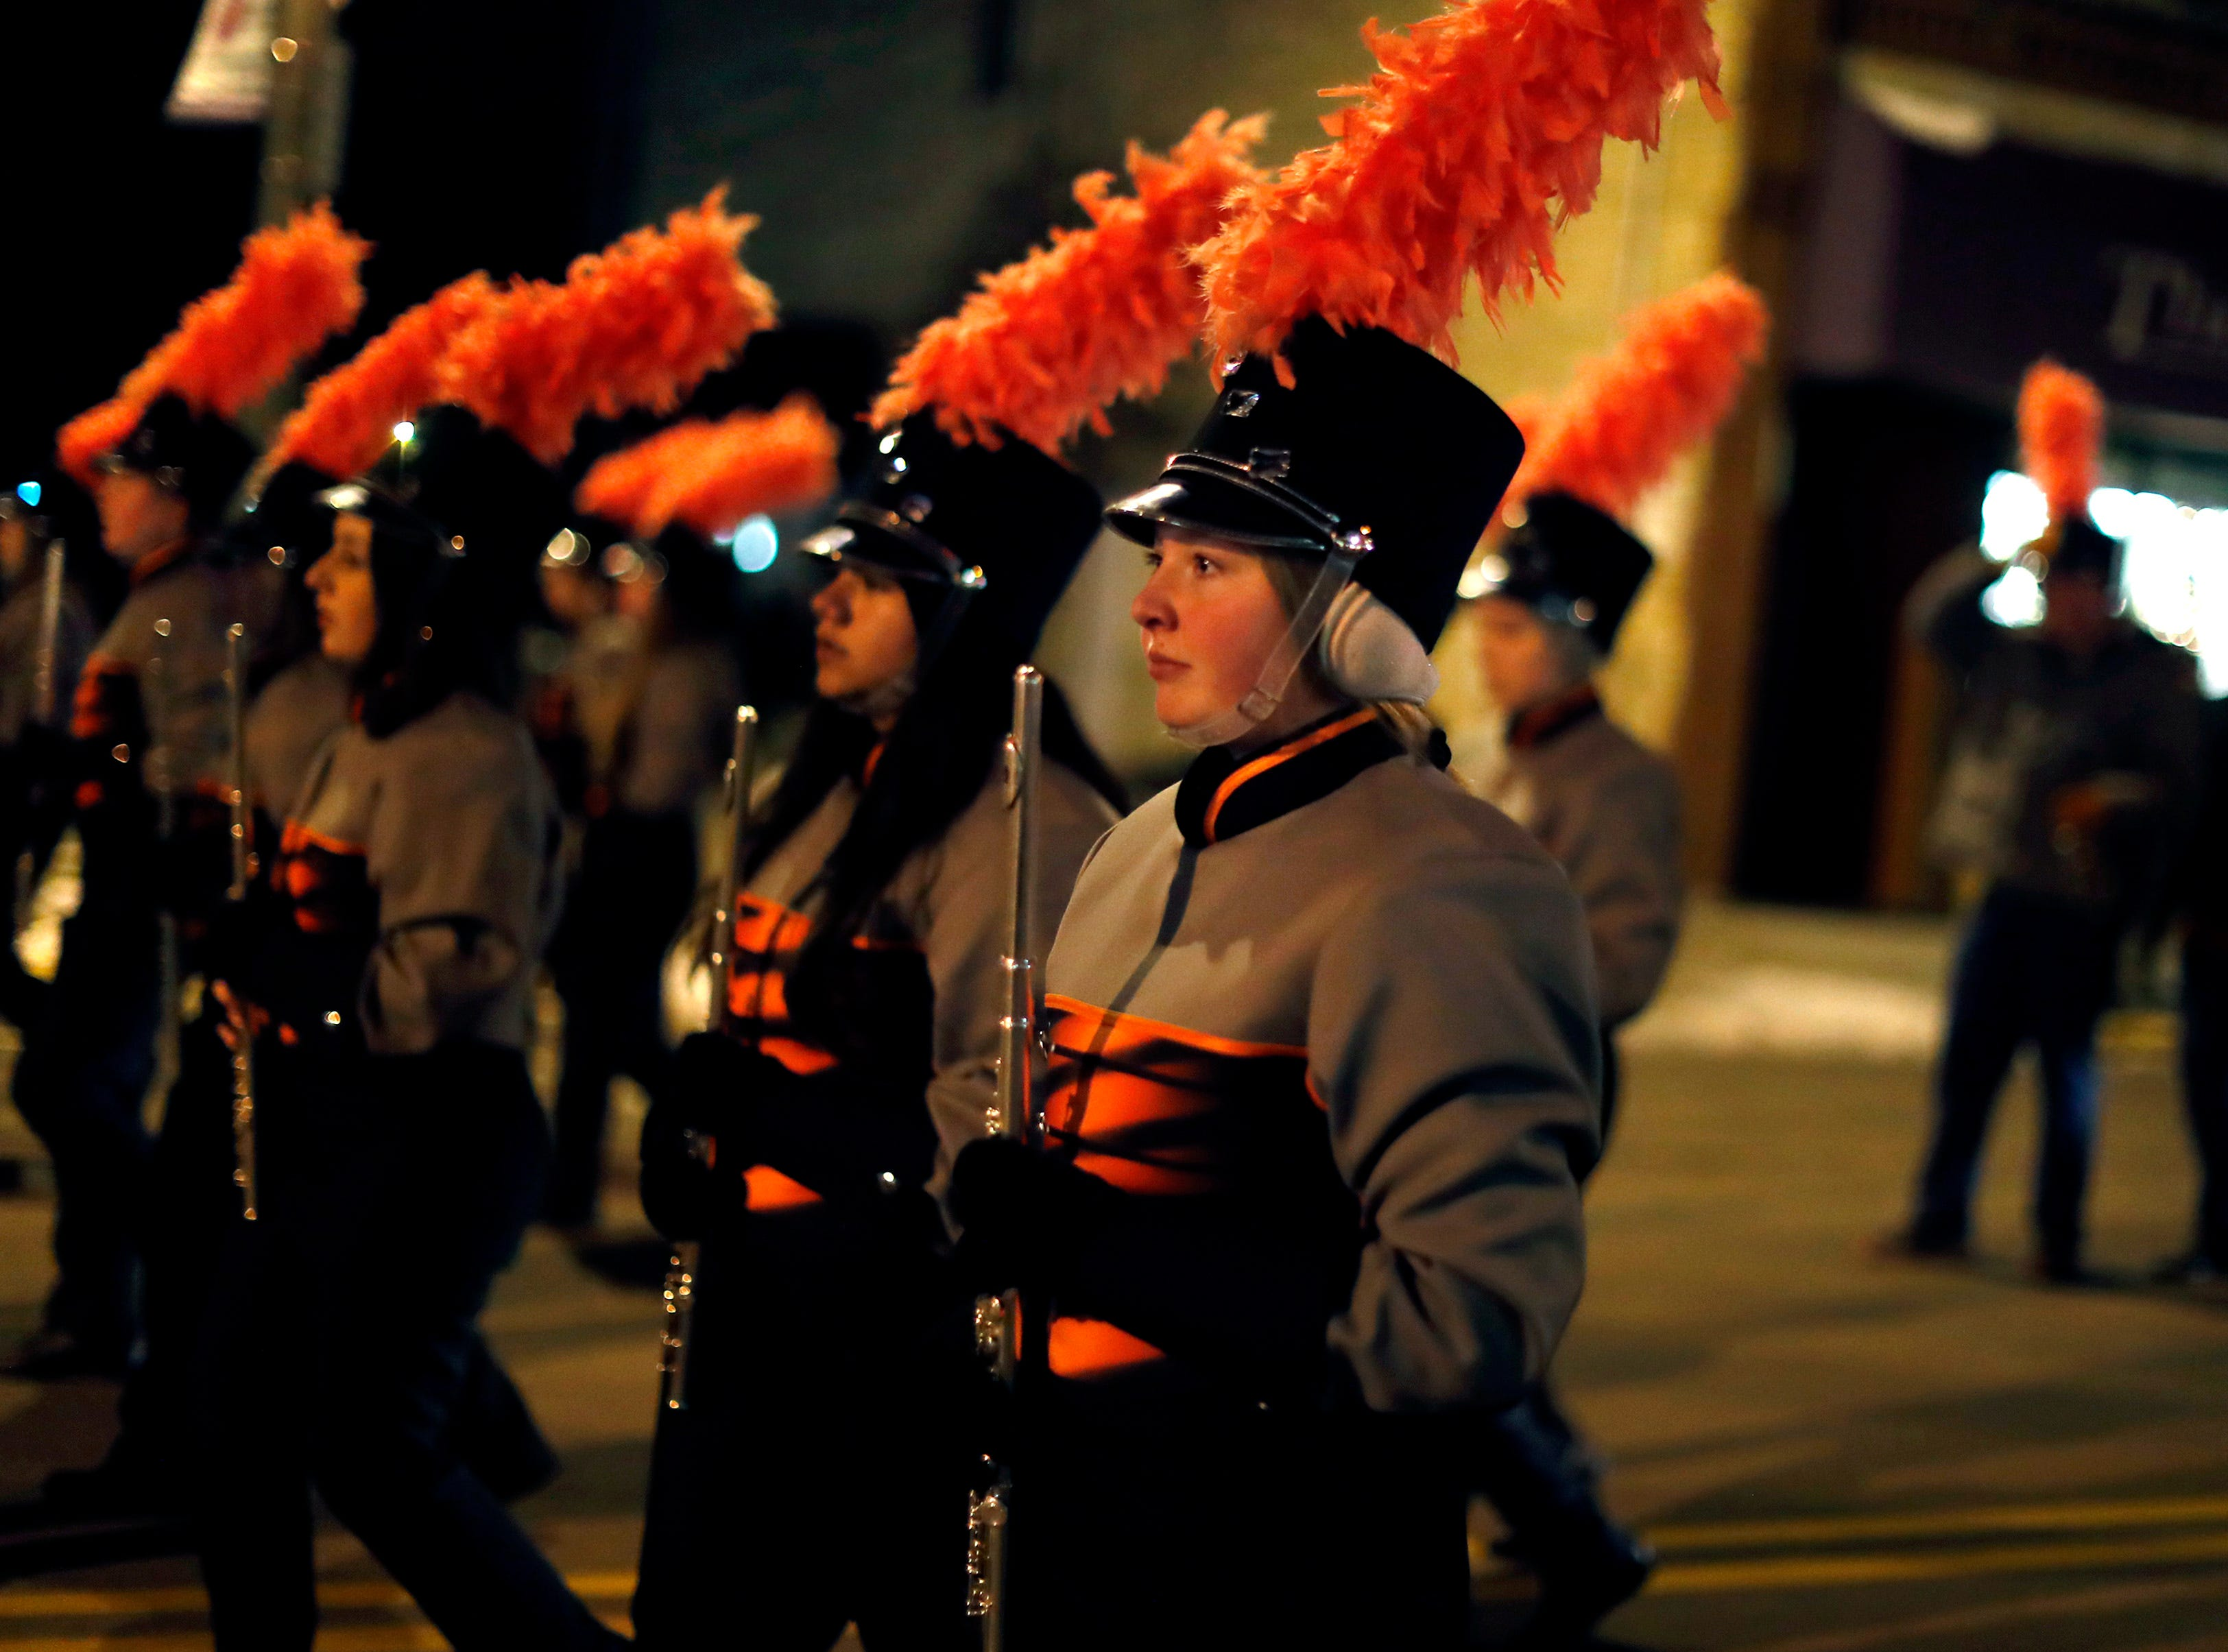 The Kaukauna High School marching band during the Electric City Christmas Parade Tuesday, Dec. 4, 2018, in Kaukauna, Wis.